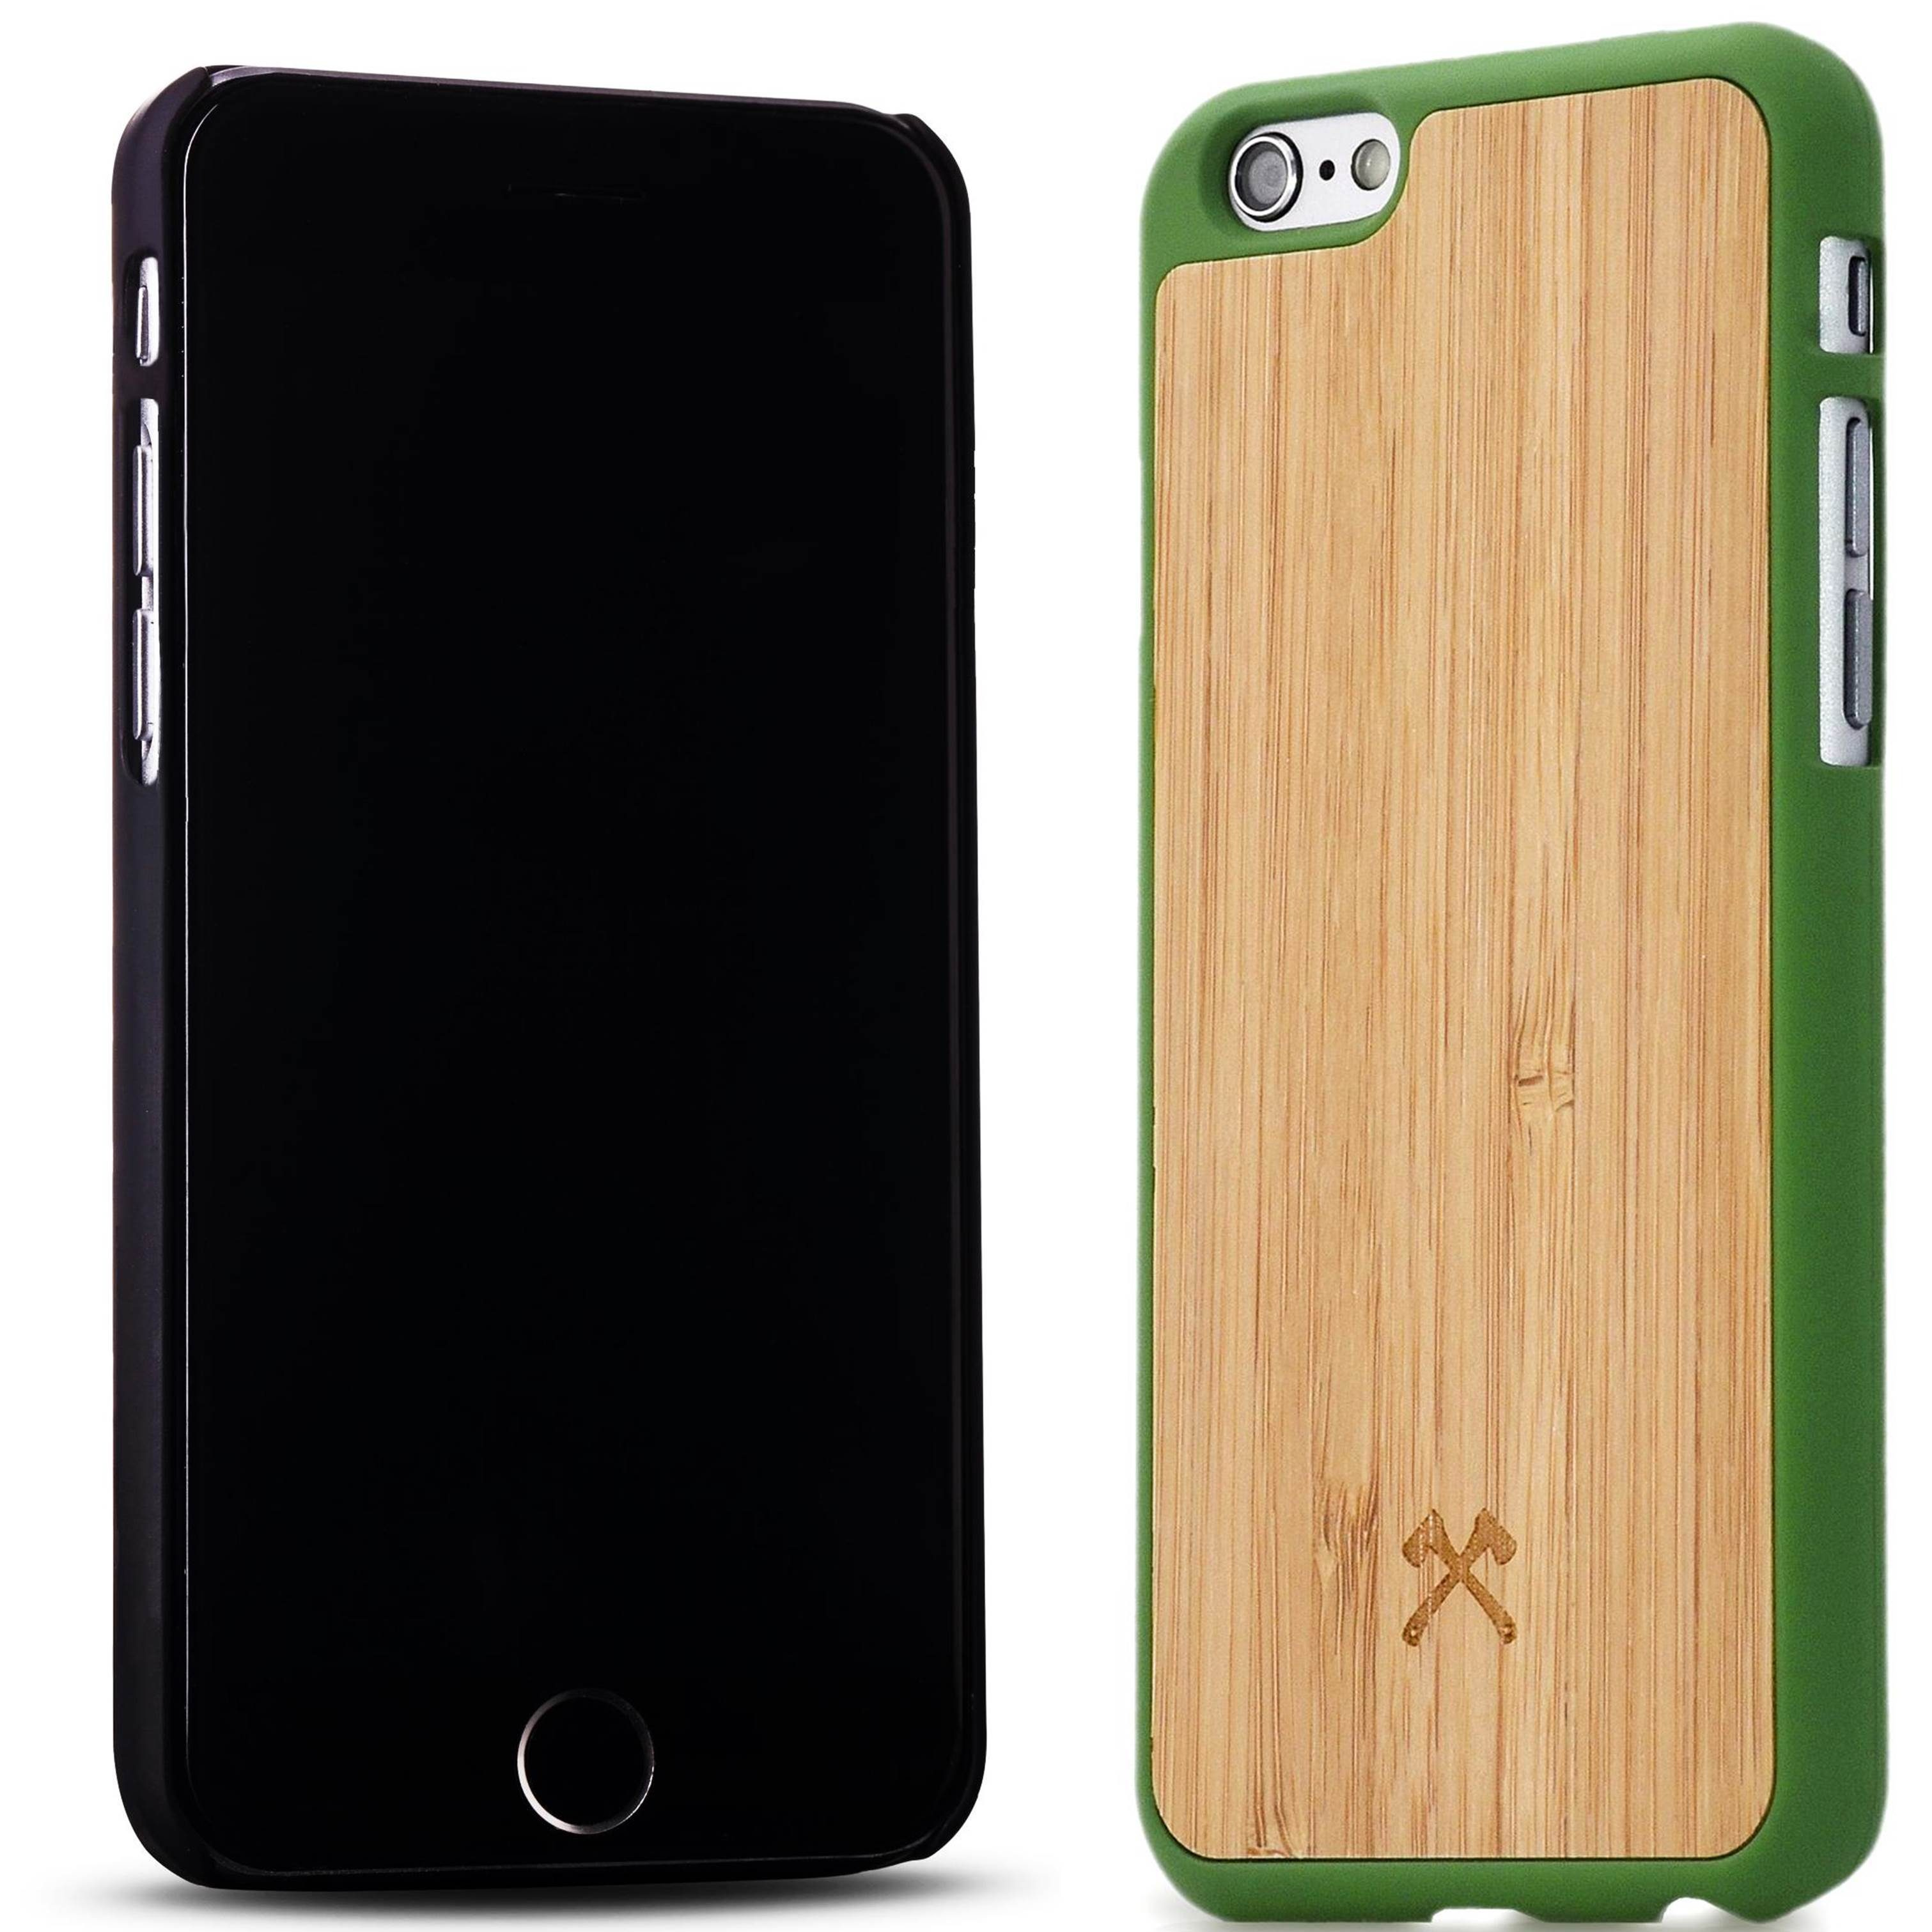 Woodcessories EcoCase - iPhone 6 Plus / 6s Plus Echtholz Casual Case